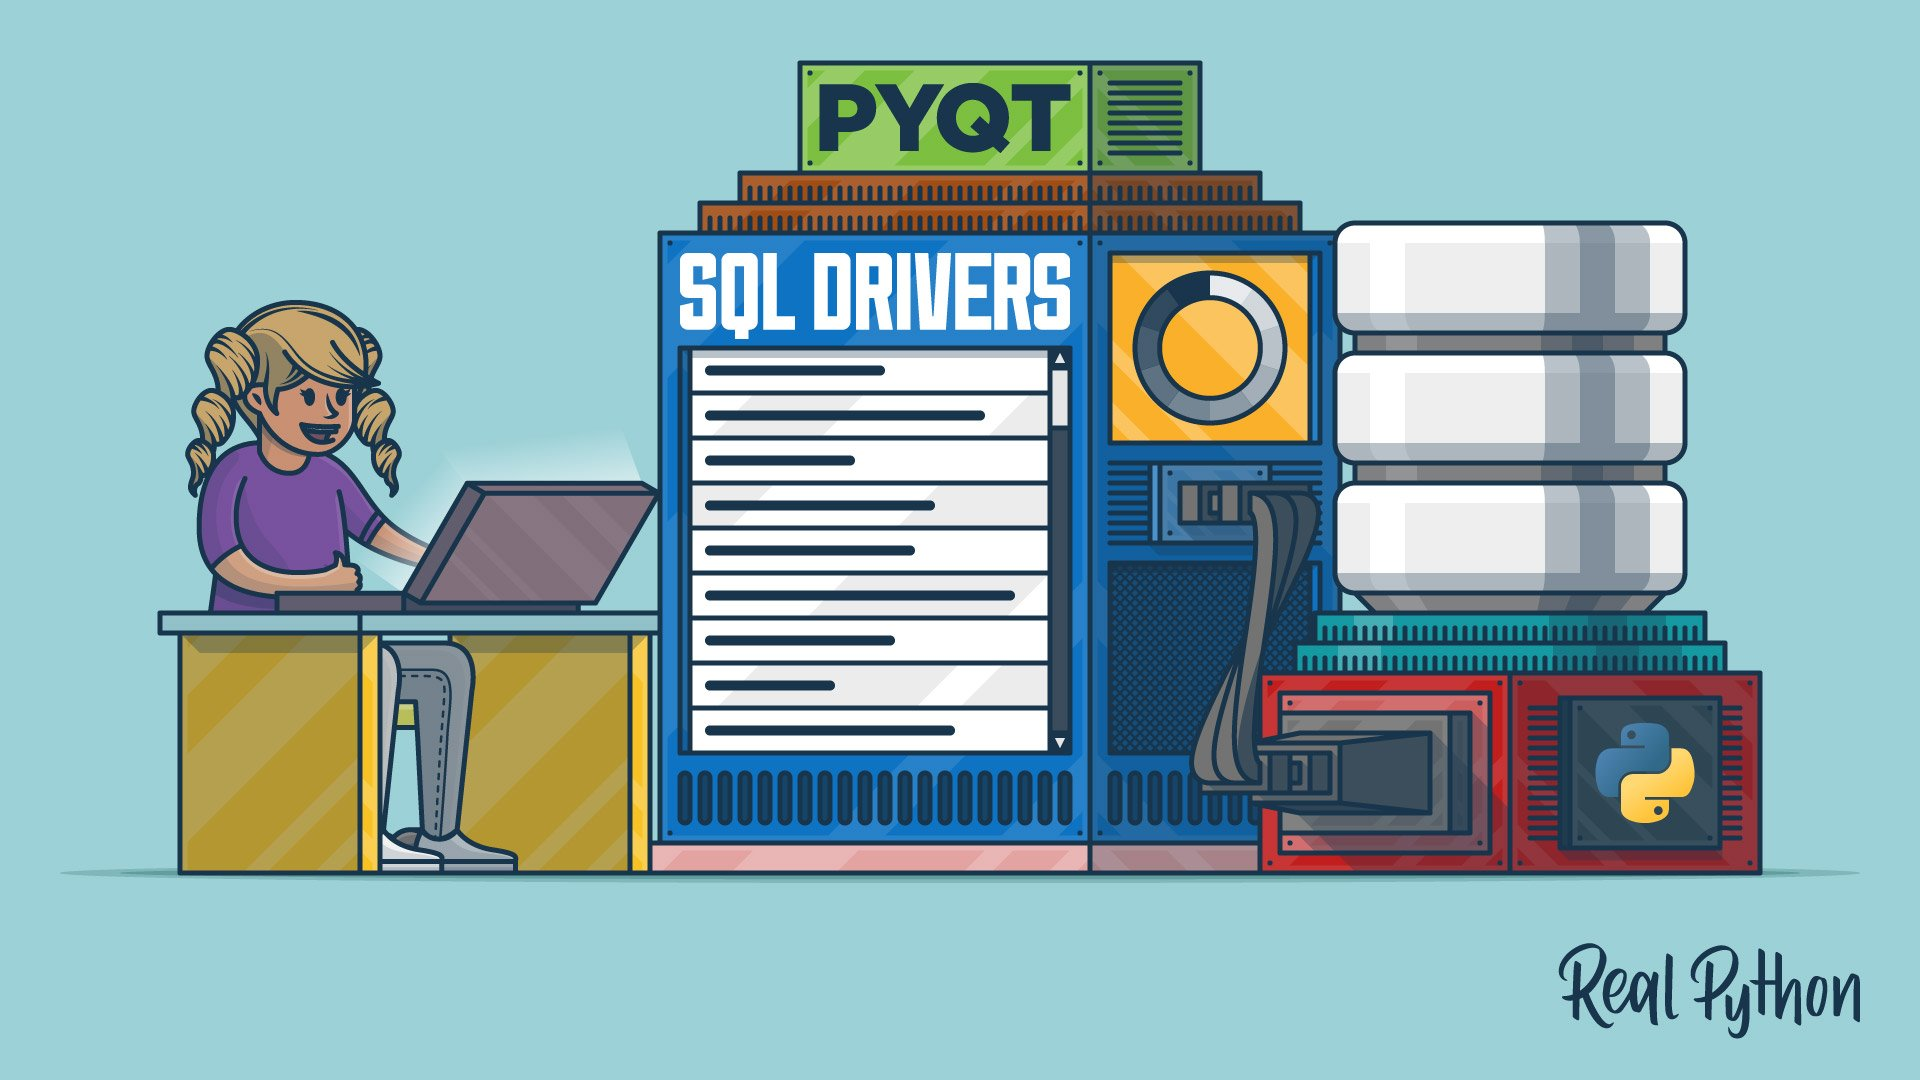 Handling SQL Databases With PyQt: The Basics